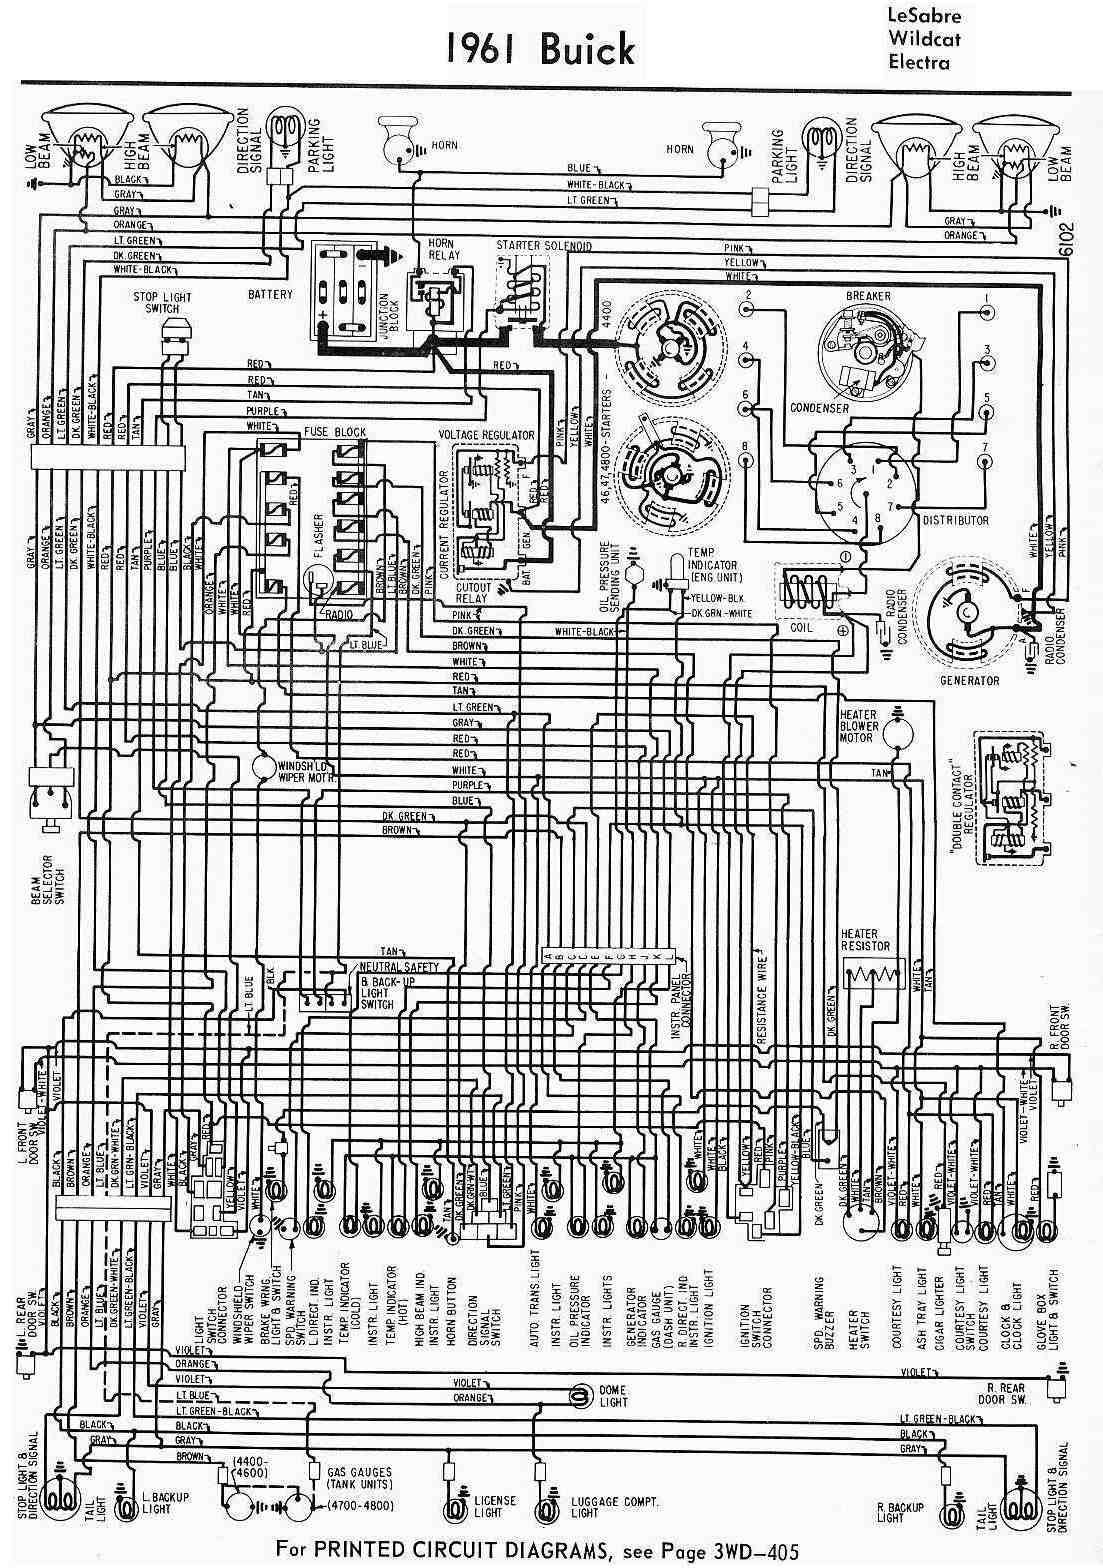 a6441862bfcf99130fb7ff5756998744 1948 studebaker wiring diagram manual repair with engine studebaker wiring diagrams at soozxer.org